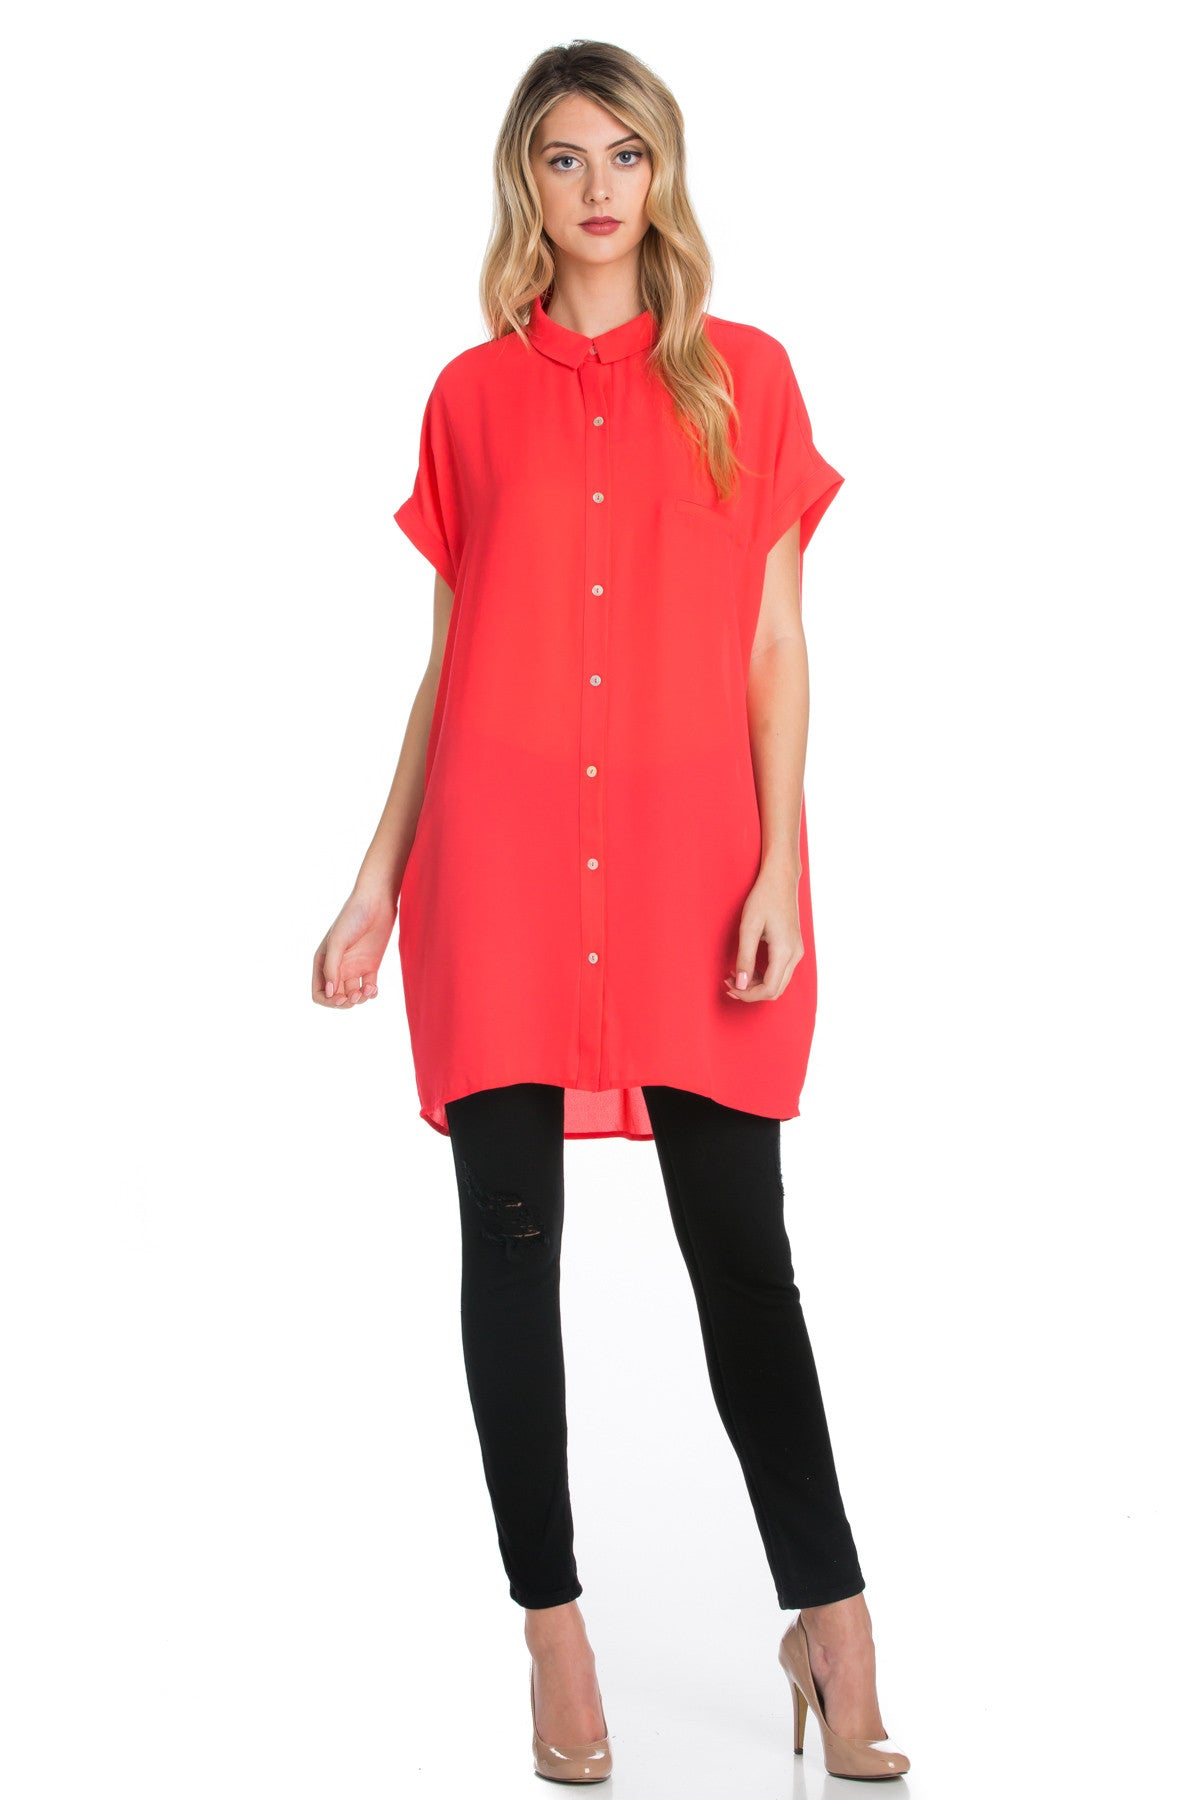 Short Sleeve Longline Button Down Chiffon Top in Coral - Tops - My Yuccie - 1